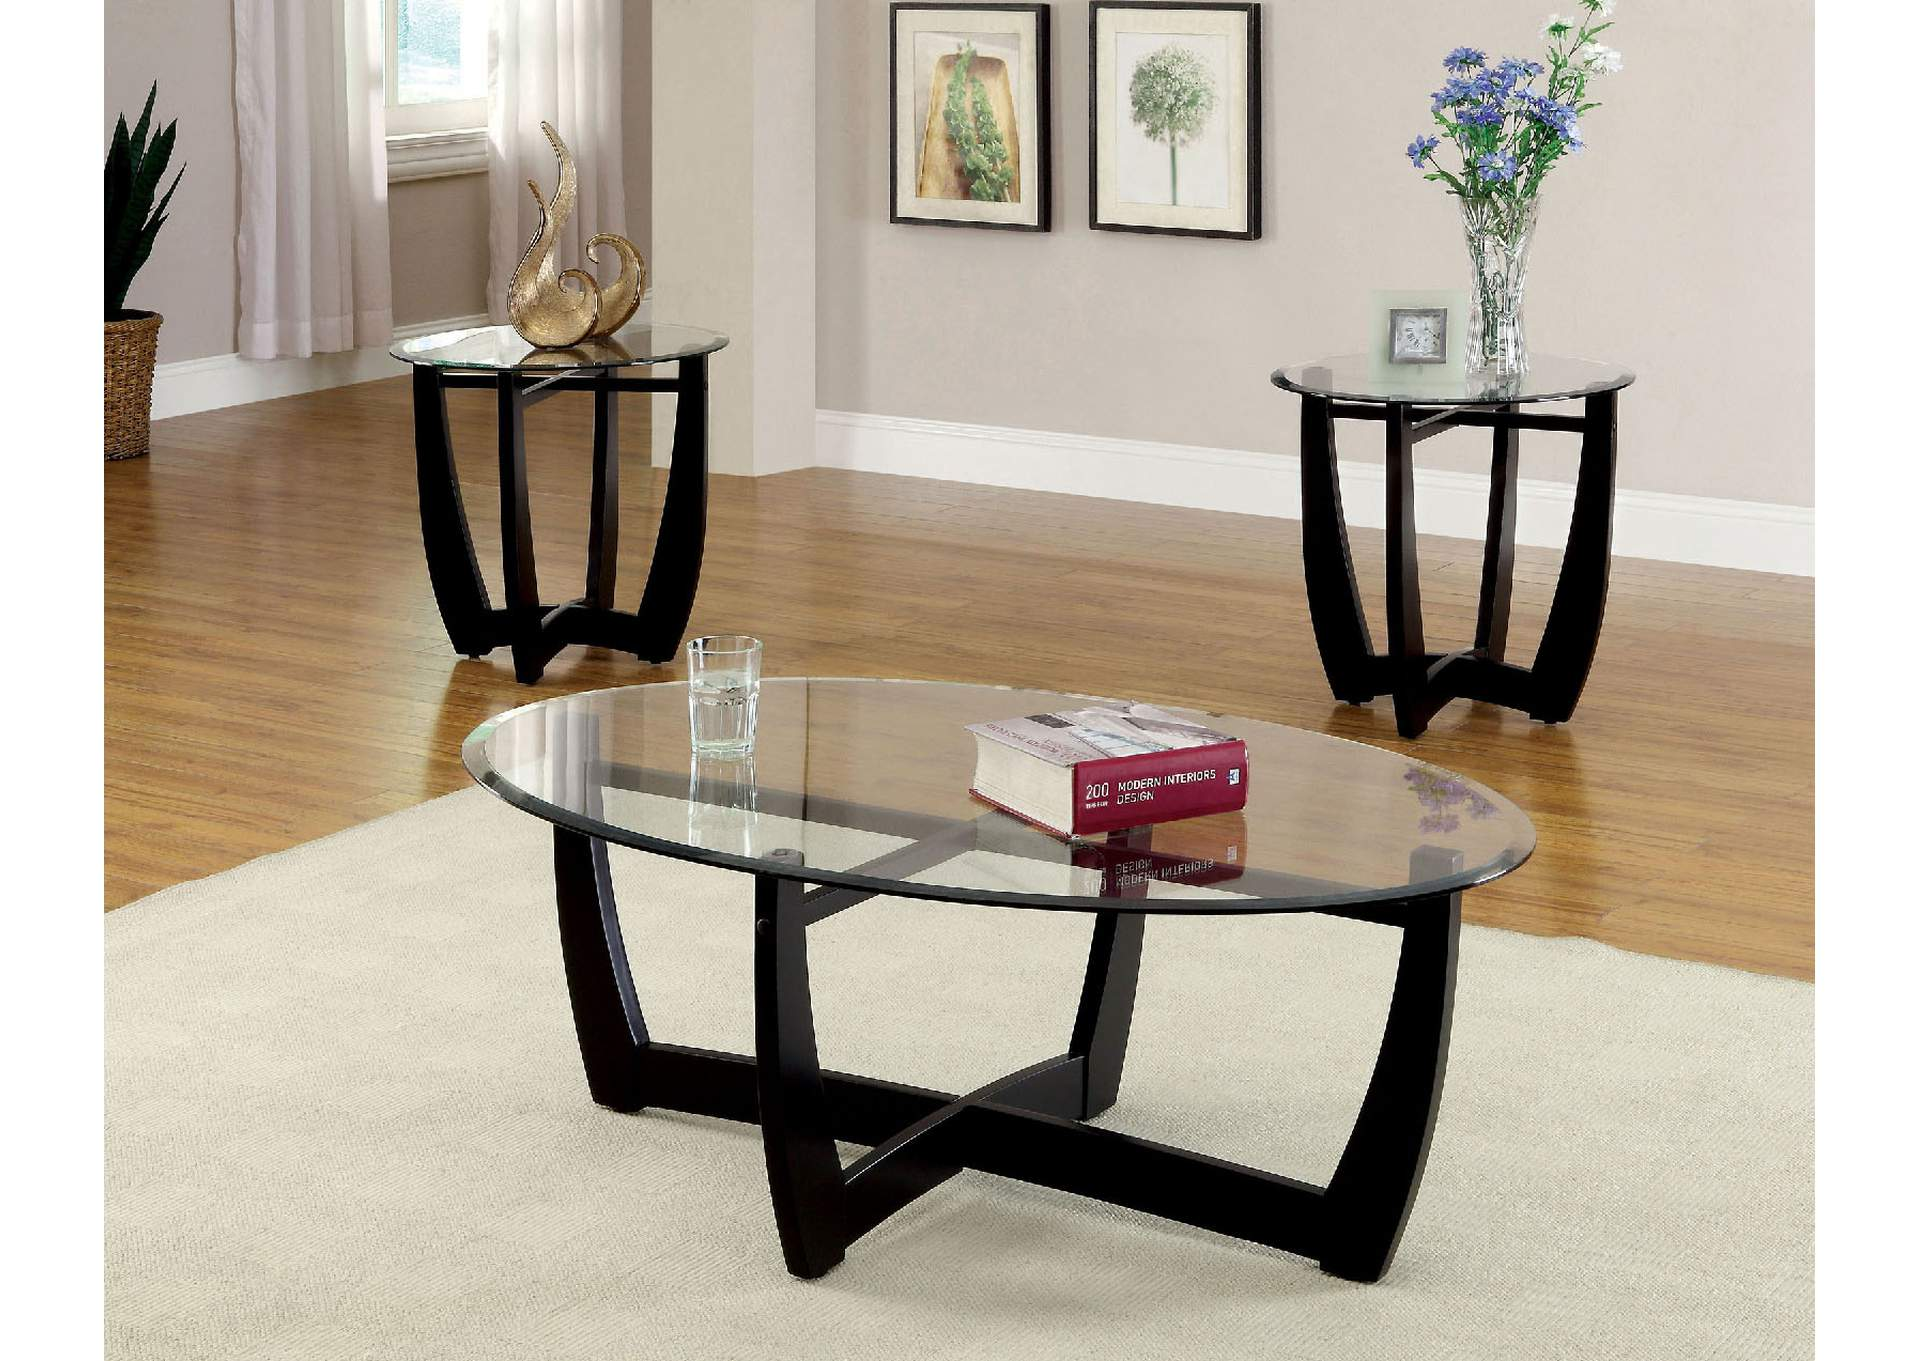 Dafni 3 Piece Black Tempered Glass Top Table Set w/Modern Style Legs (Coffee & Cohenu0027s Furniture - New Castle DE Dafni 3 Piece Black Tempered ...